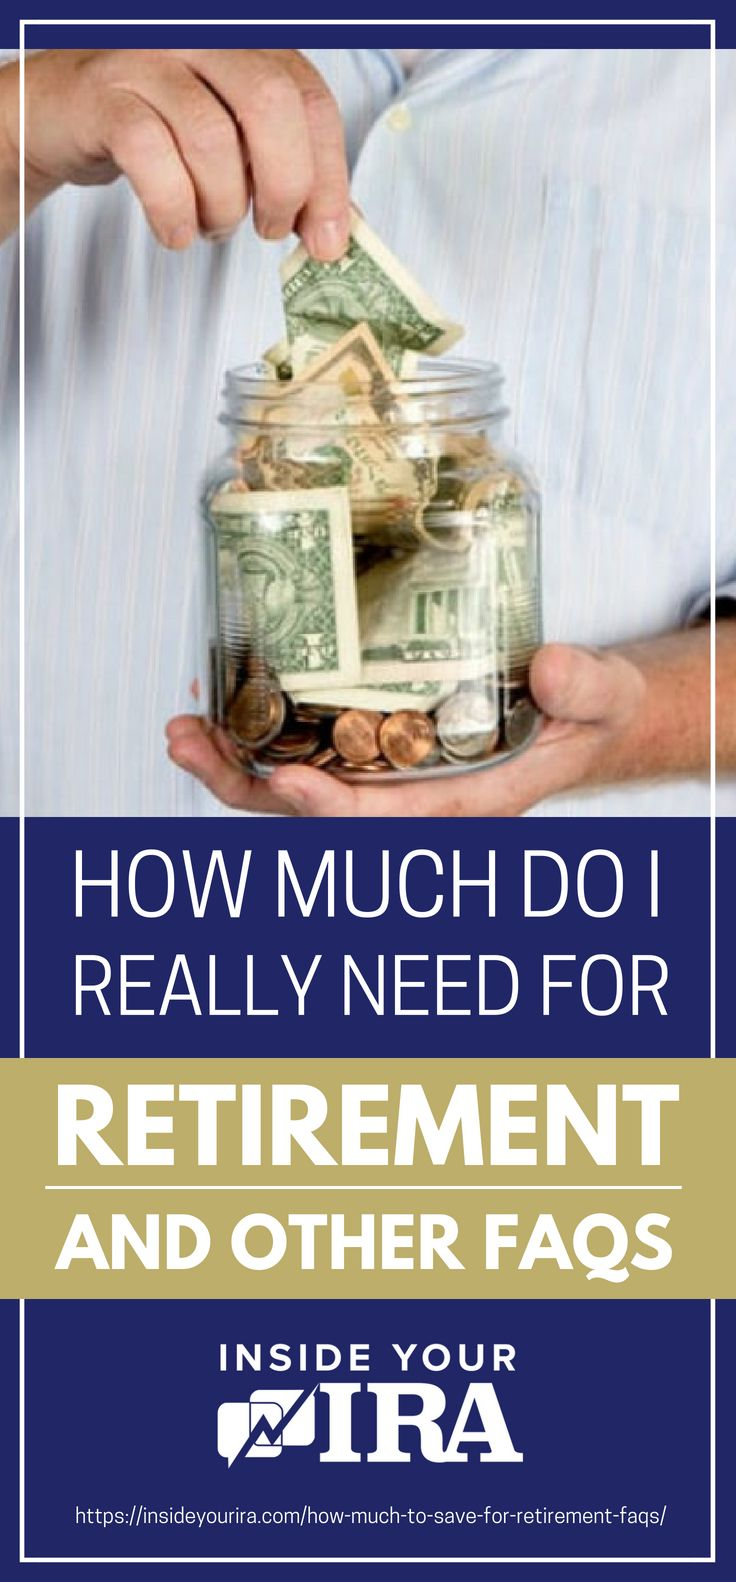 How Much Do I Need For Retirement? | Inside Your IRA https://insideyourira.com/how-much-do-i-need-for-retirement/